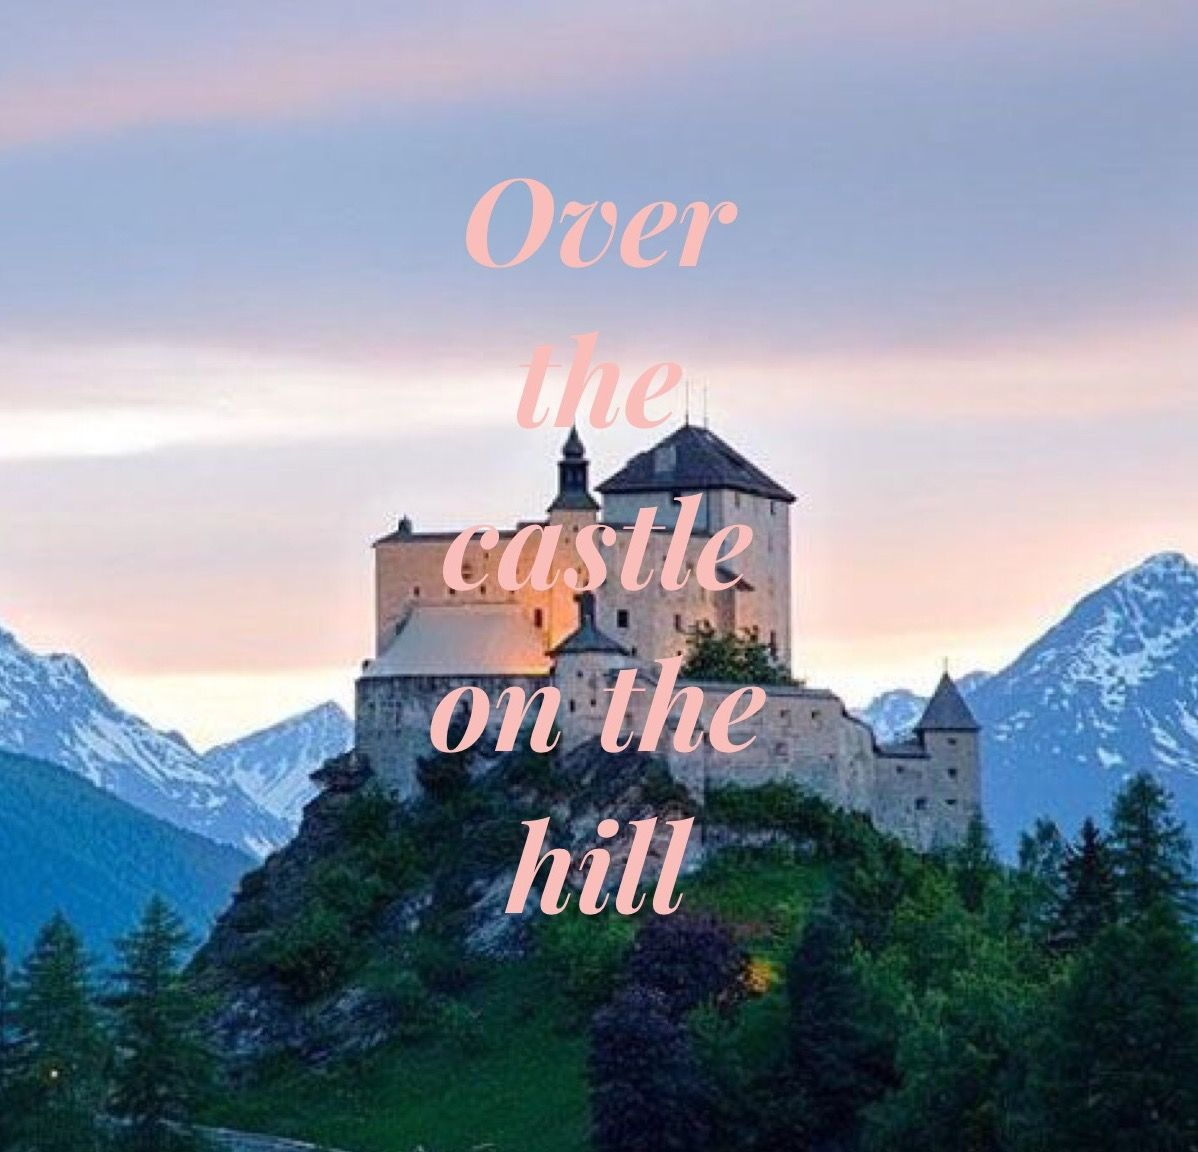 Quotes About Castles Ed Sheeran Castle On The Hill  Ed Sheeran  Pinterest  Castles